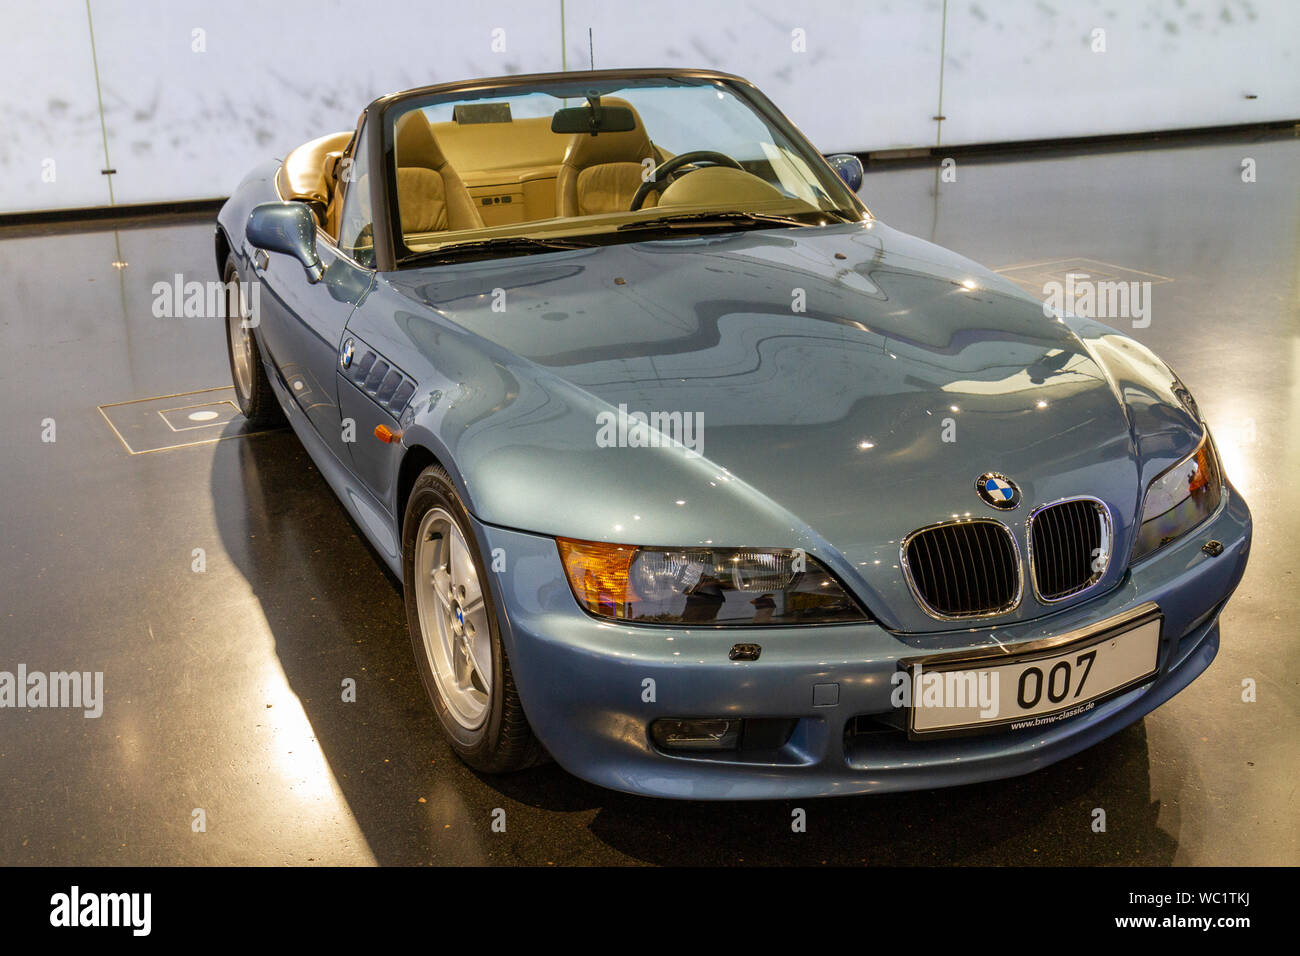 A Bmw Z3 A Two Seater Sports Cars 1995 On Display In The Bmw Museum Munich Bavaria Germany Stock Photo Alamy